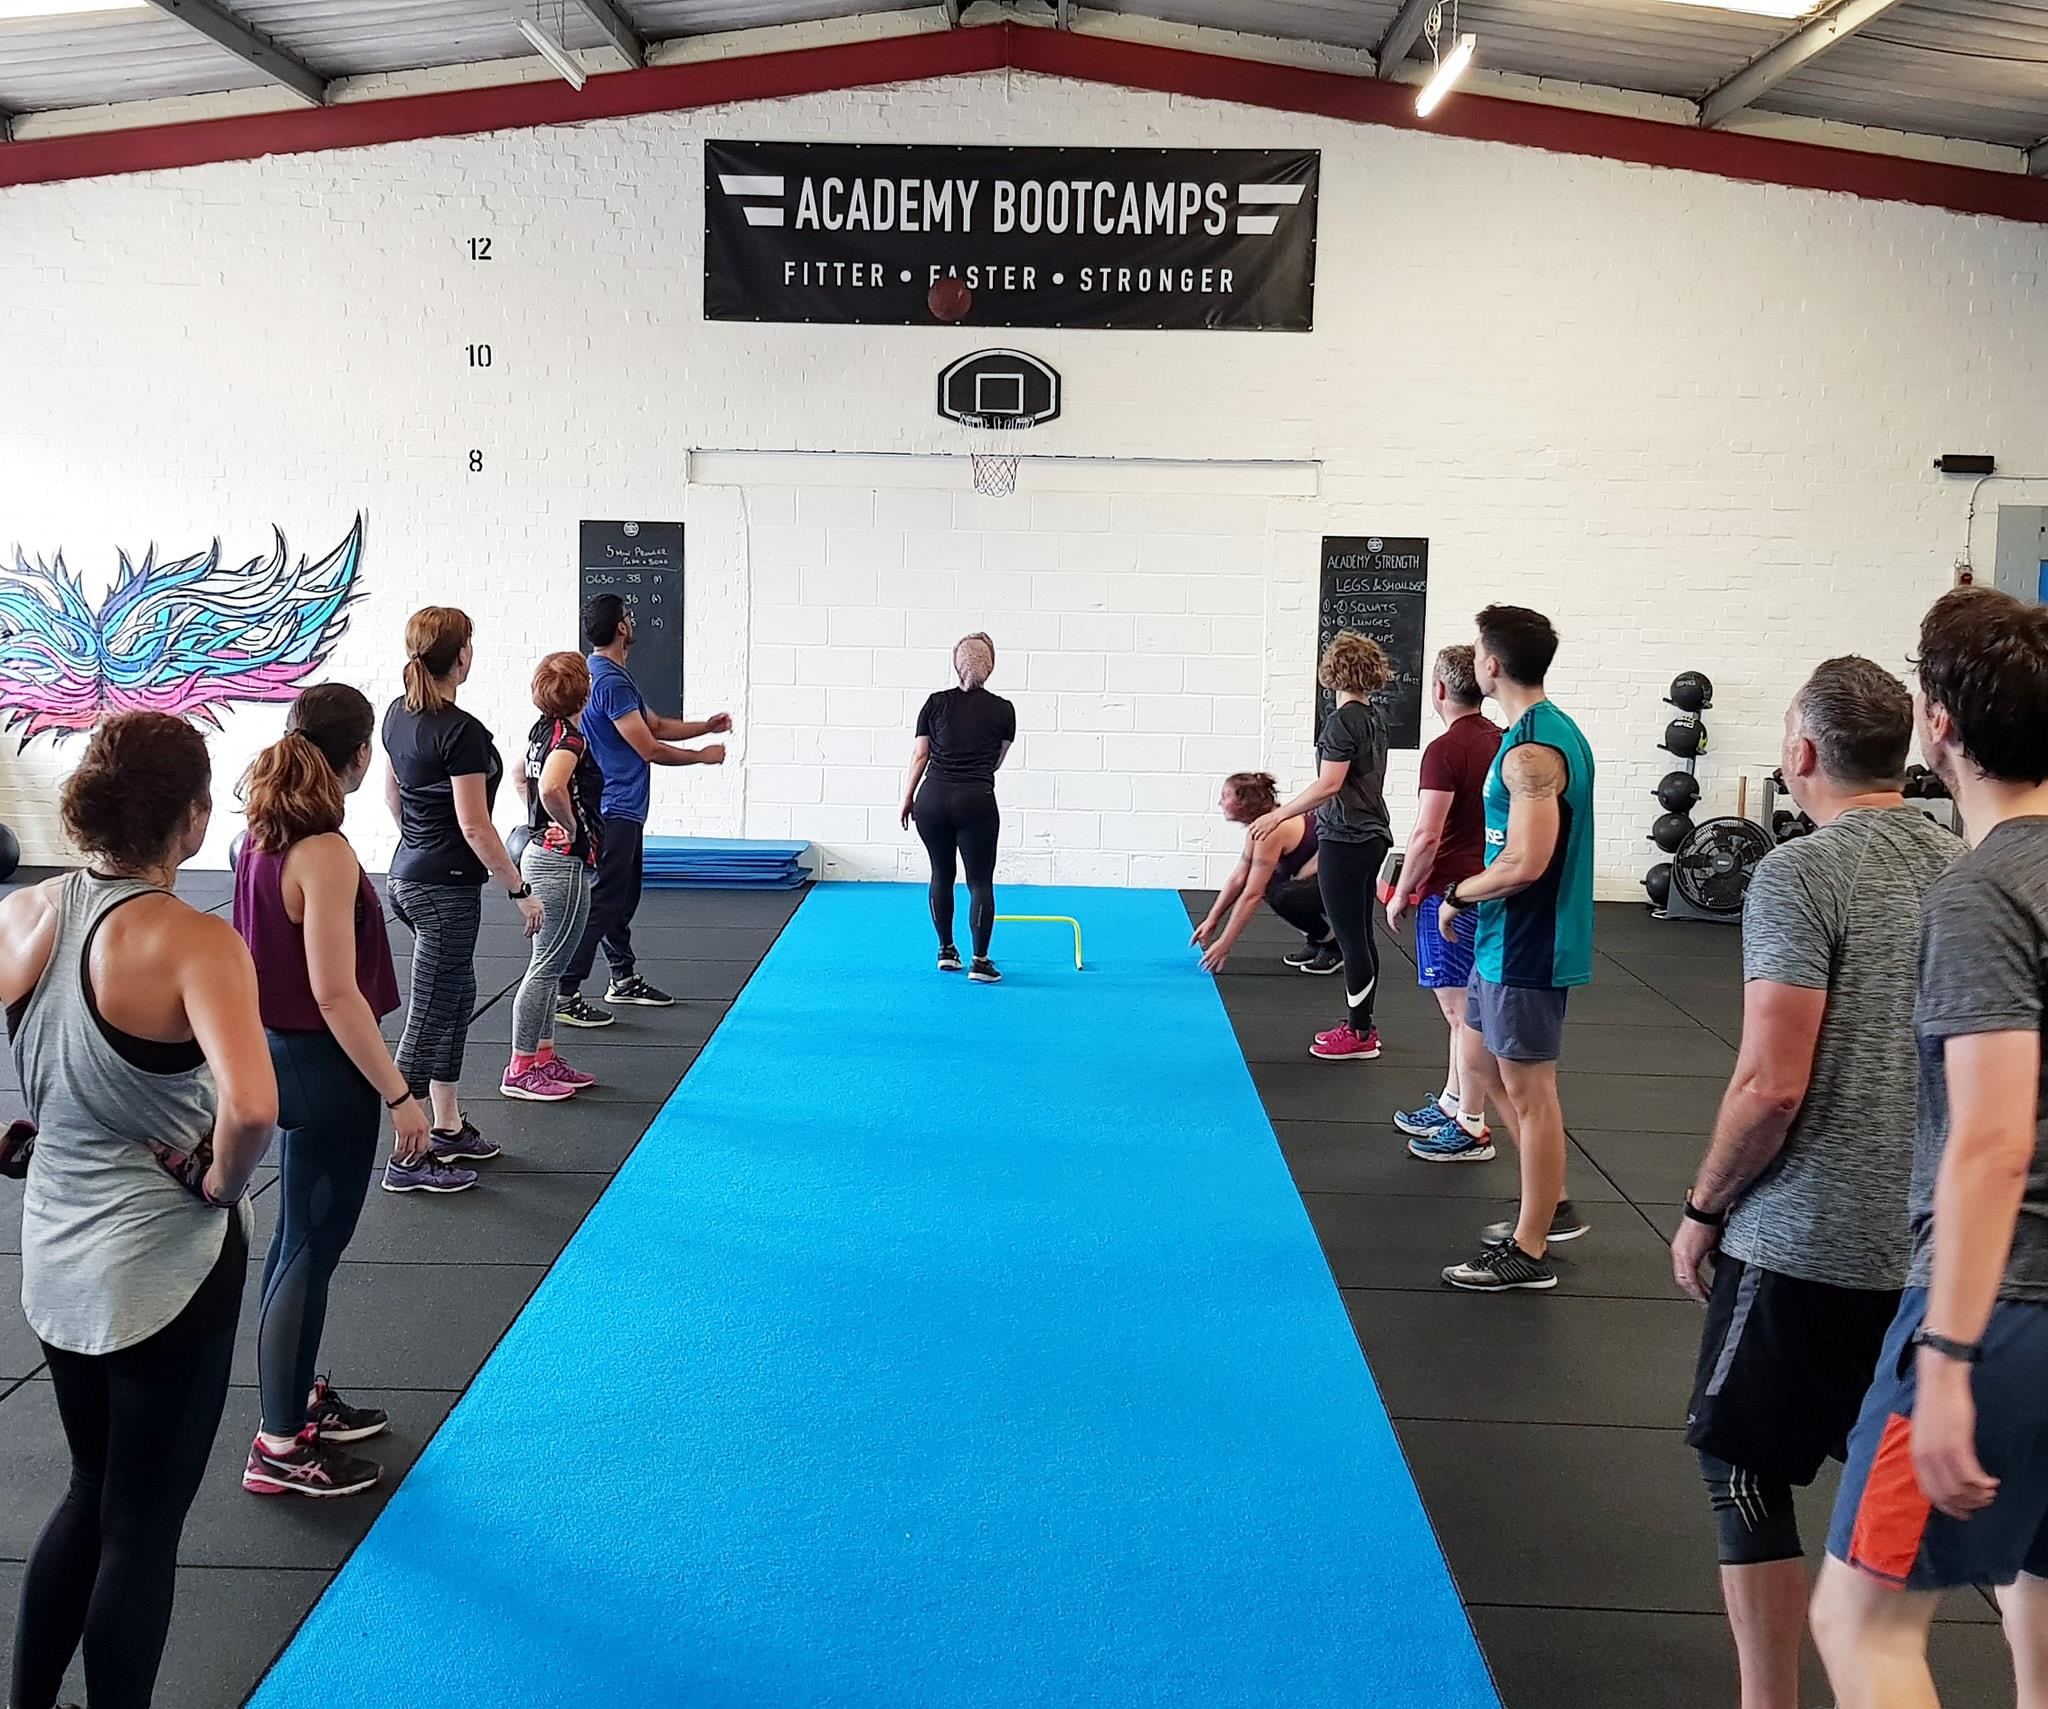 Norwich Fitness Academy Bootcamps